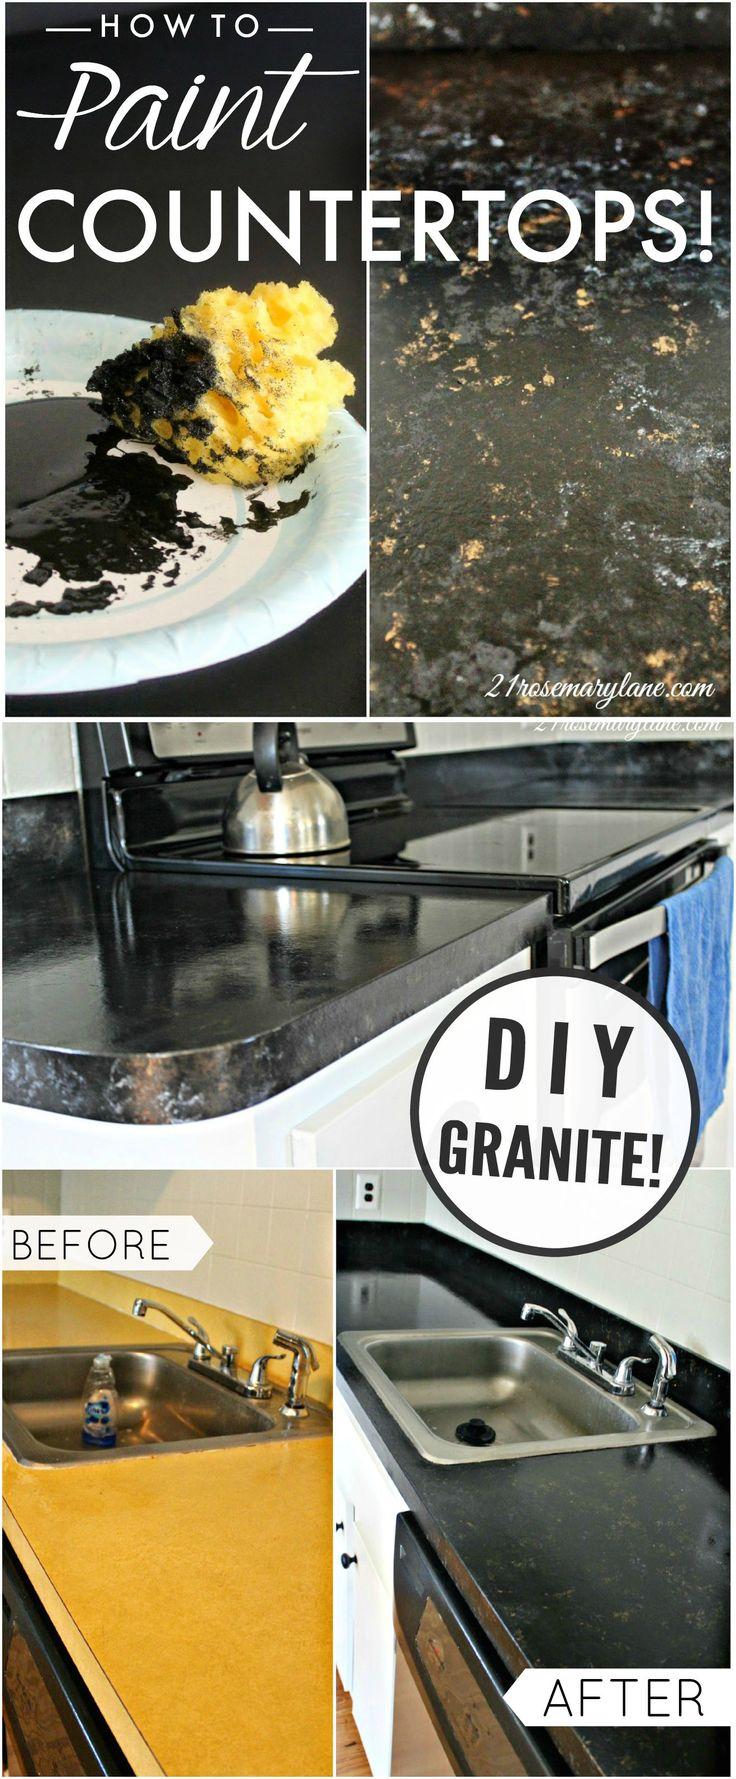 How to paint your countertops to look like granite/marble with Giani™ stone paint kits.    A simple and low-cost way to redo your Kitchen or Bathroom.  DIY affordable countertop update! www.gianigranite.com